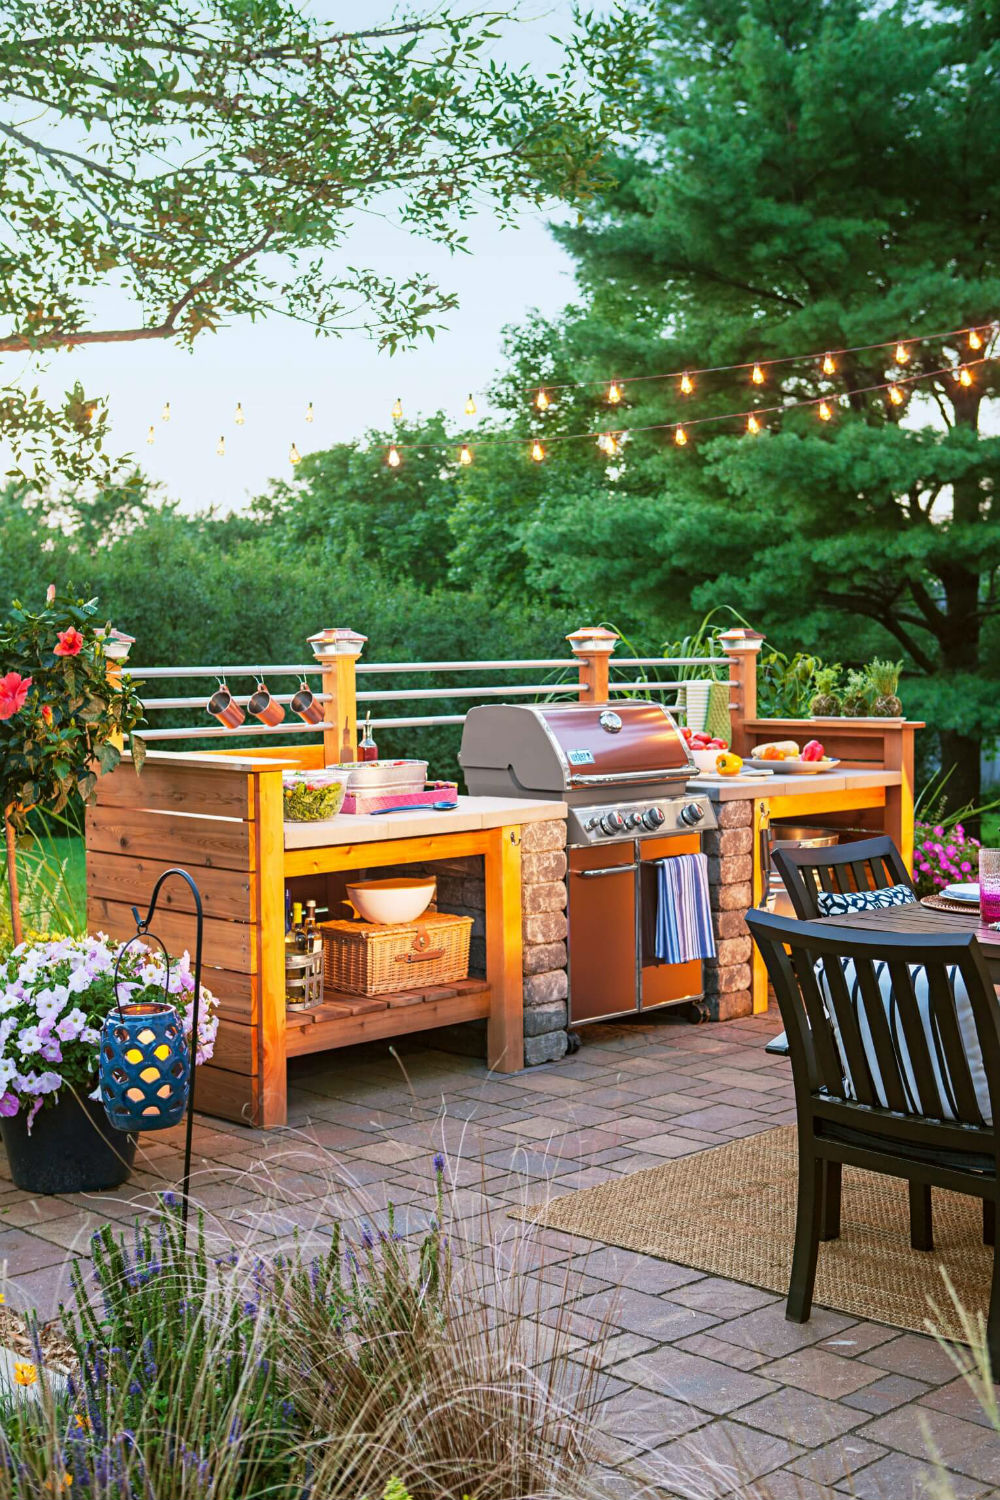 Expensive Kitchen With A Gas Grill | DIY Outdoor Kitchen Ideas (Cheap, Simple, Modern, and Country)